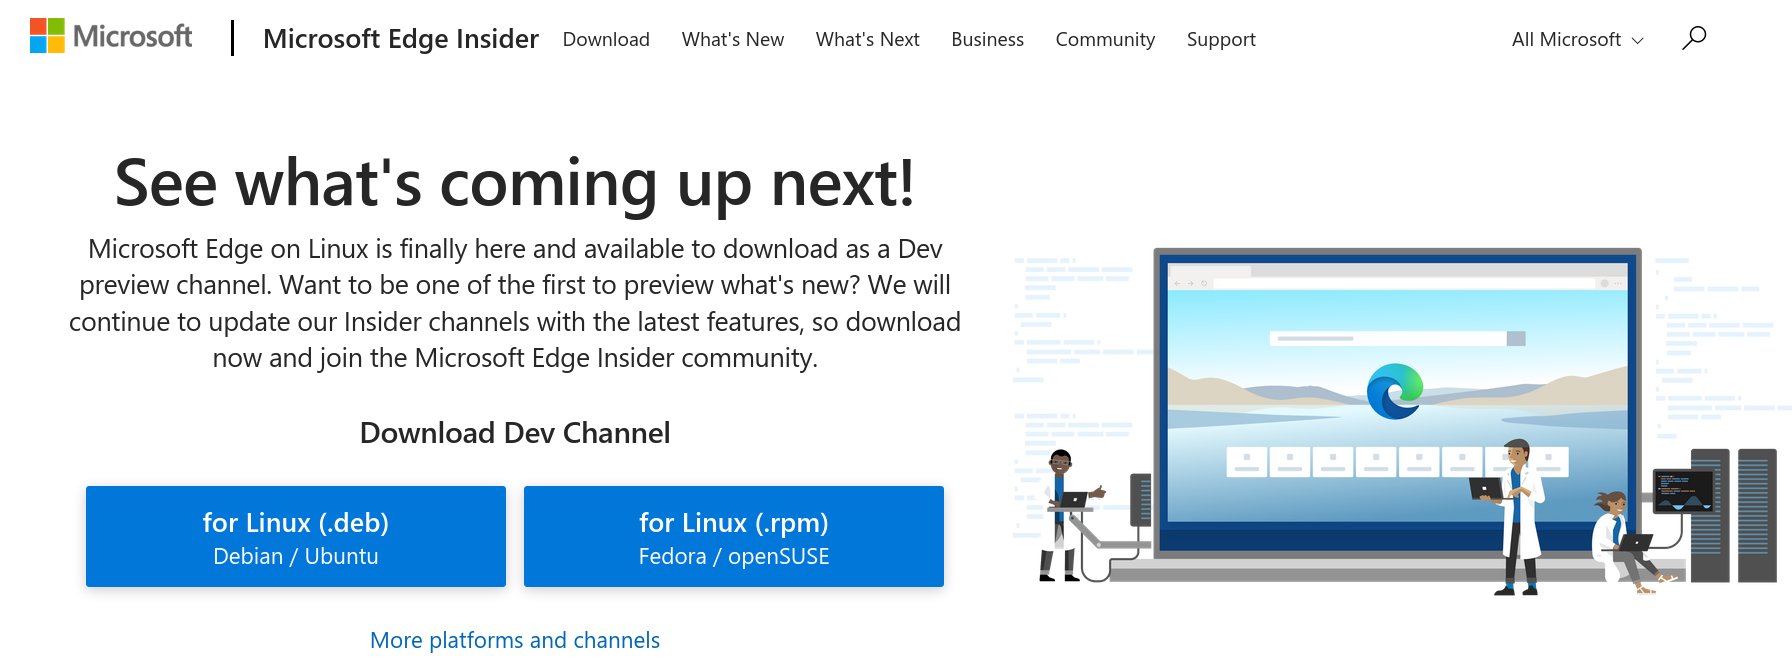 Screenshot 2020 10 21 07 12 15 - Microsoft Edge for Linux just released